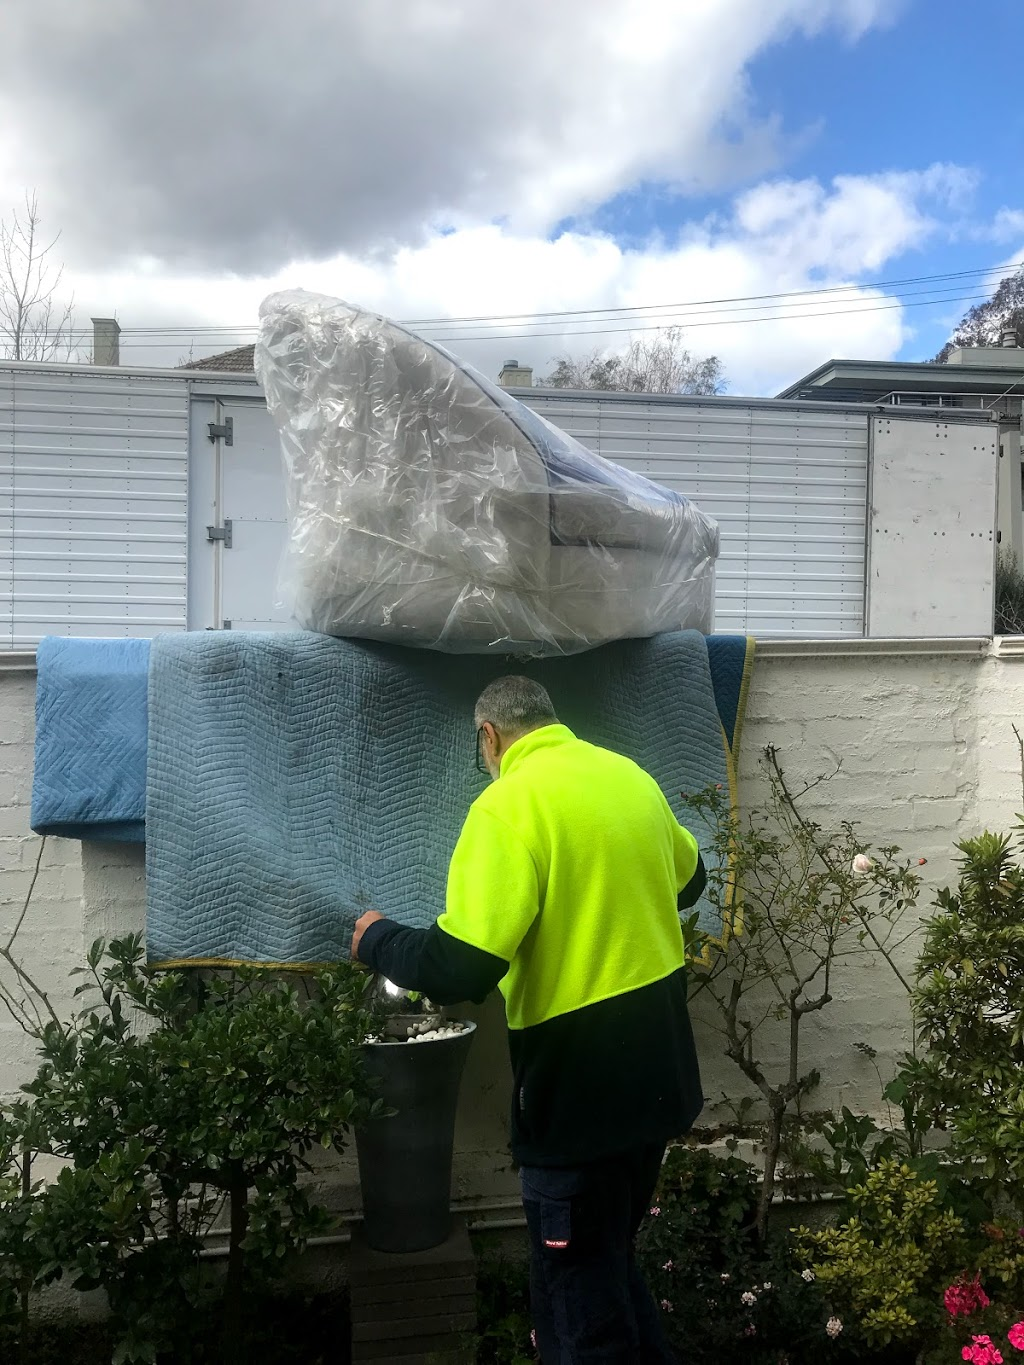 Furniture Removals by Singh | moving company | 55 Kanooka Rd, Wantirna South VIC 3152, Australia | 0425889980 OR +61 425 889 980